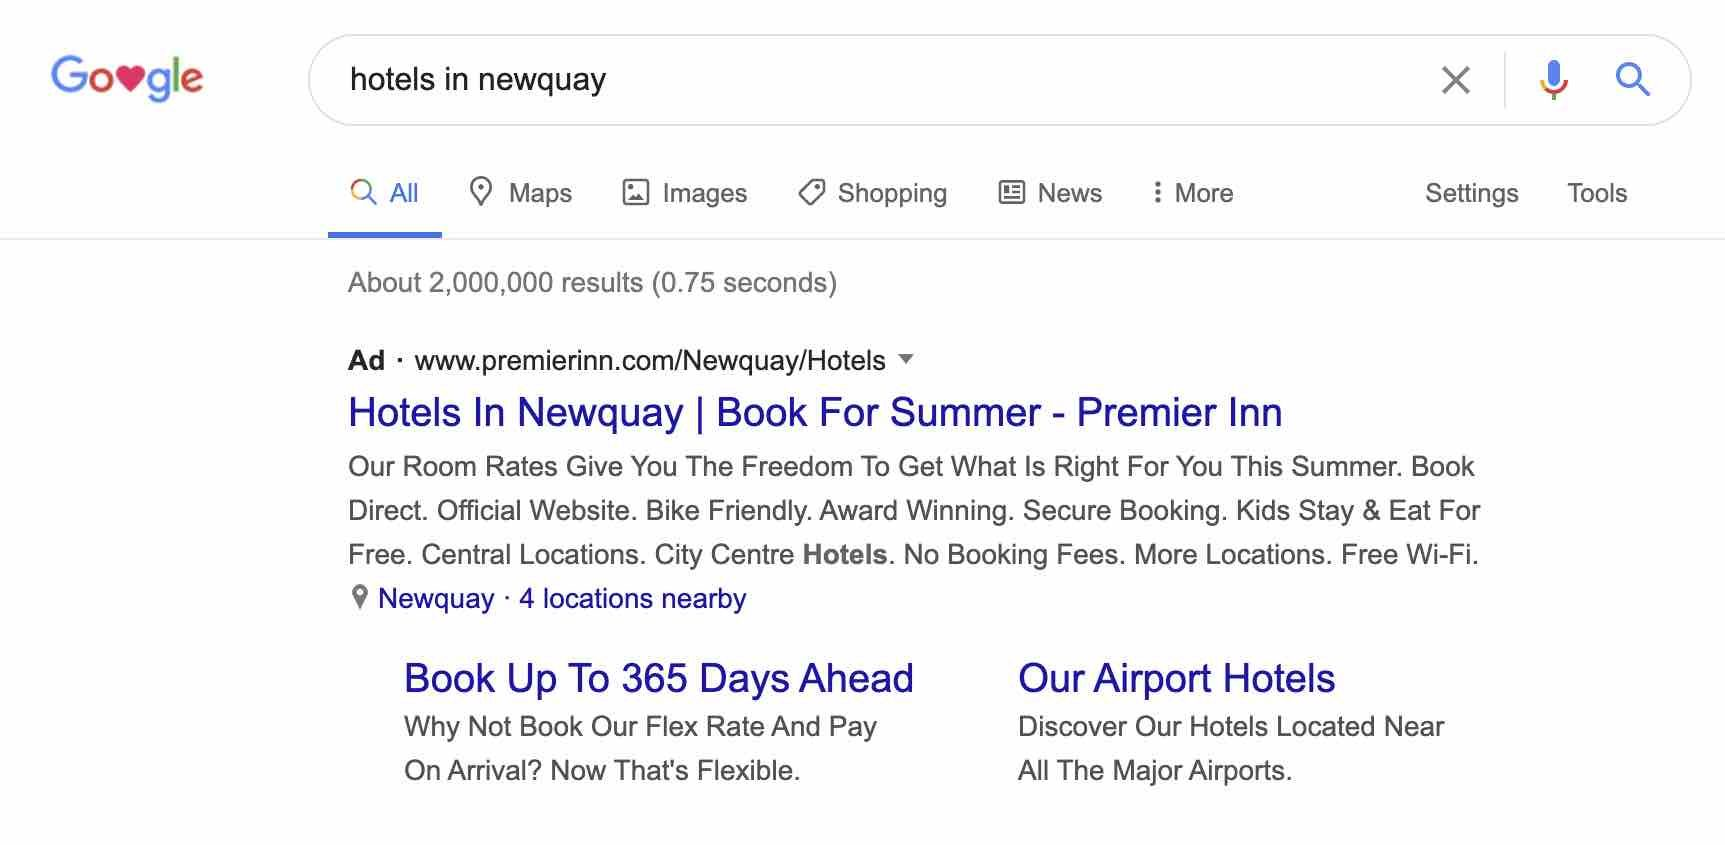 Paid advertising for hotels appears on Google.